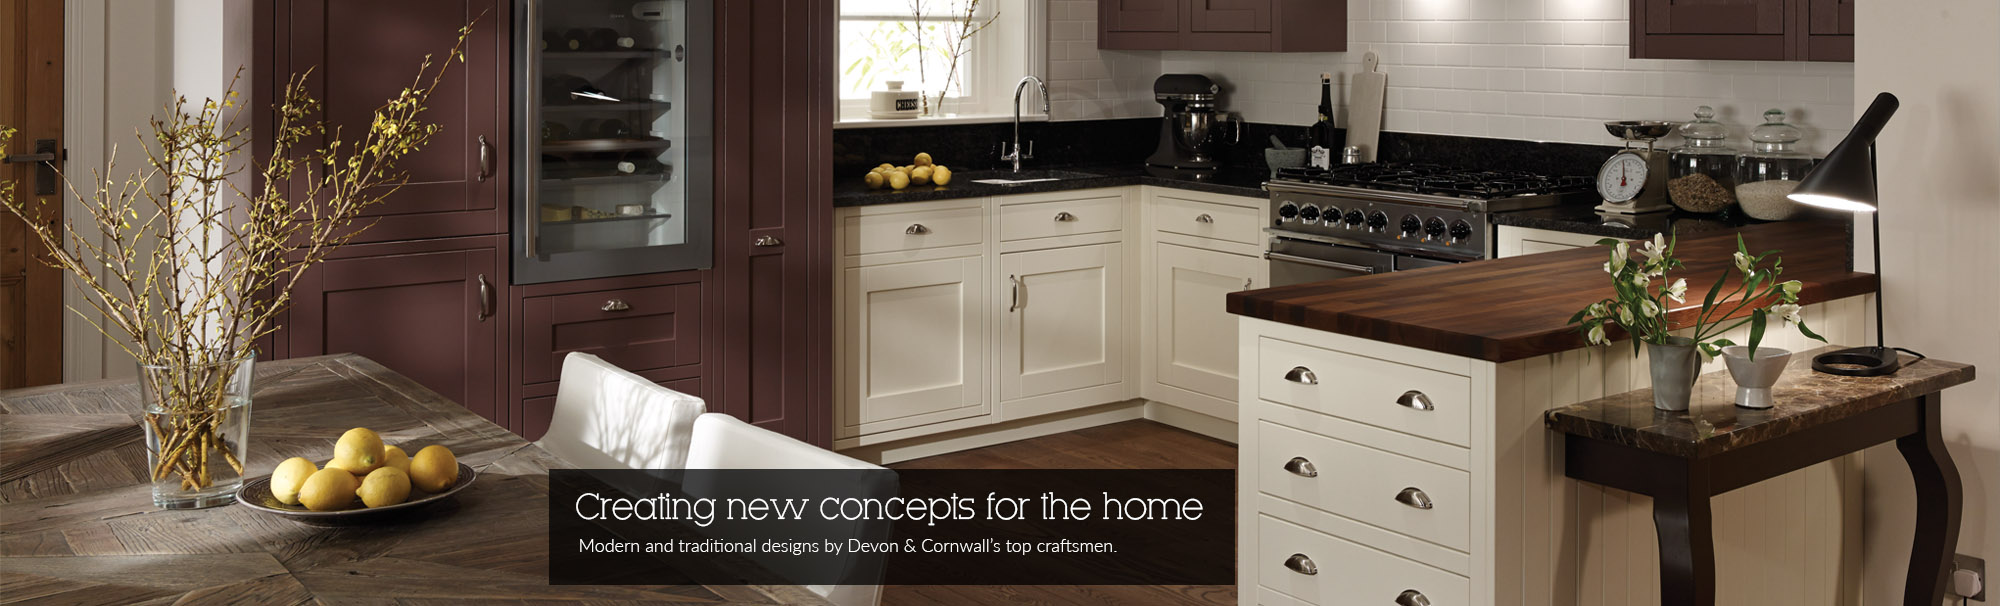 kitchen designer cornwall cornwall kitchen bathroom flooring interiors and garden 247